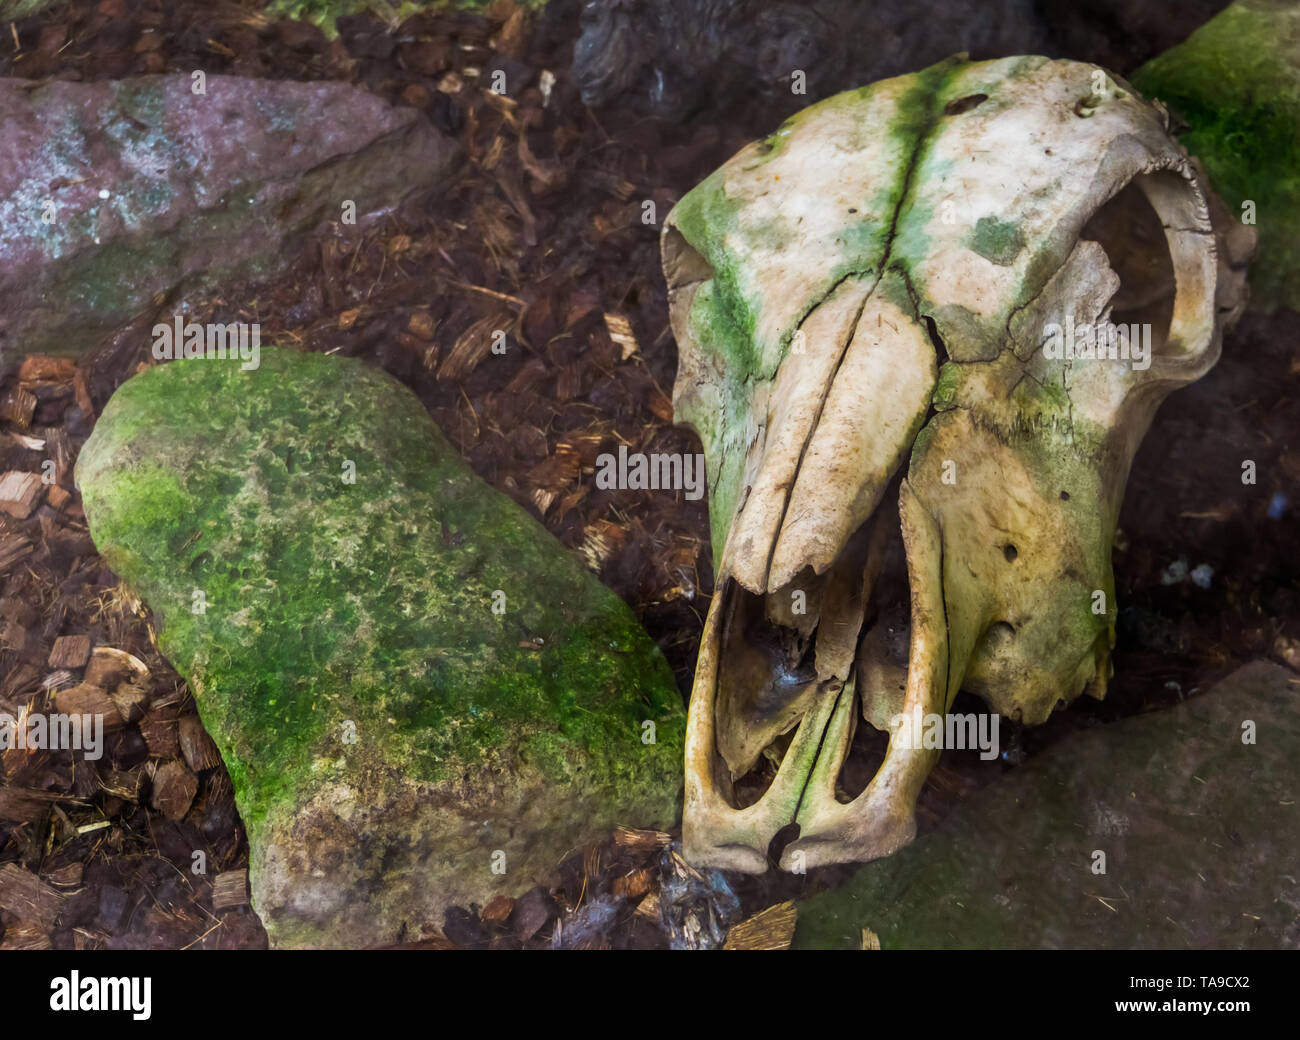 Weathered cow skull laying on the ground creepy halloween